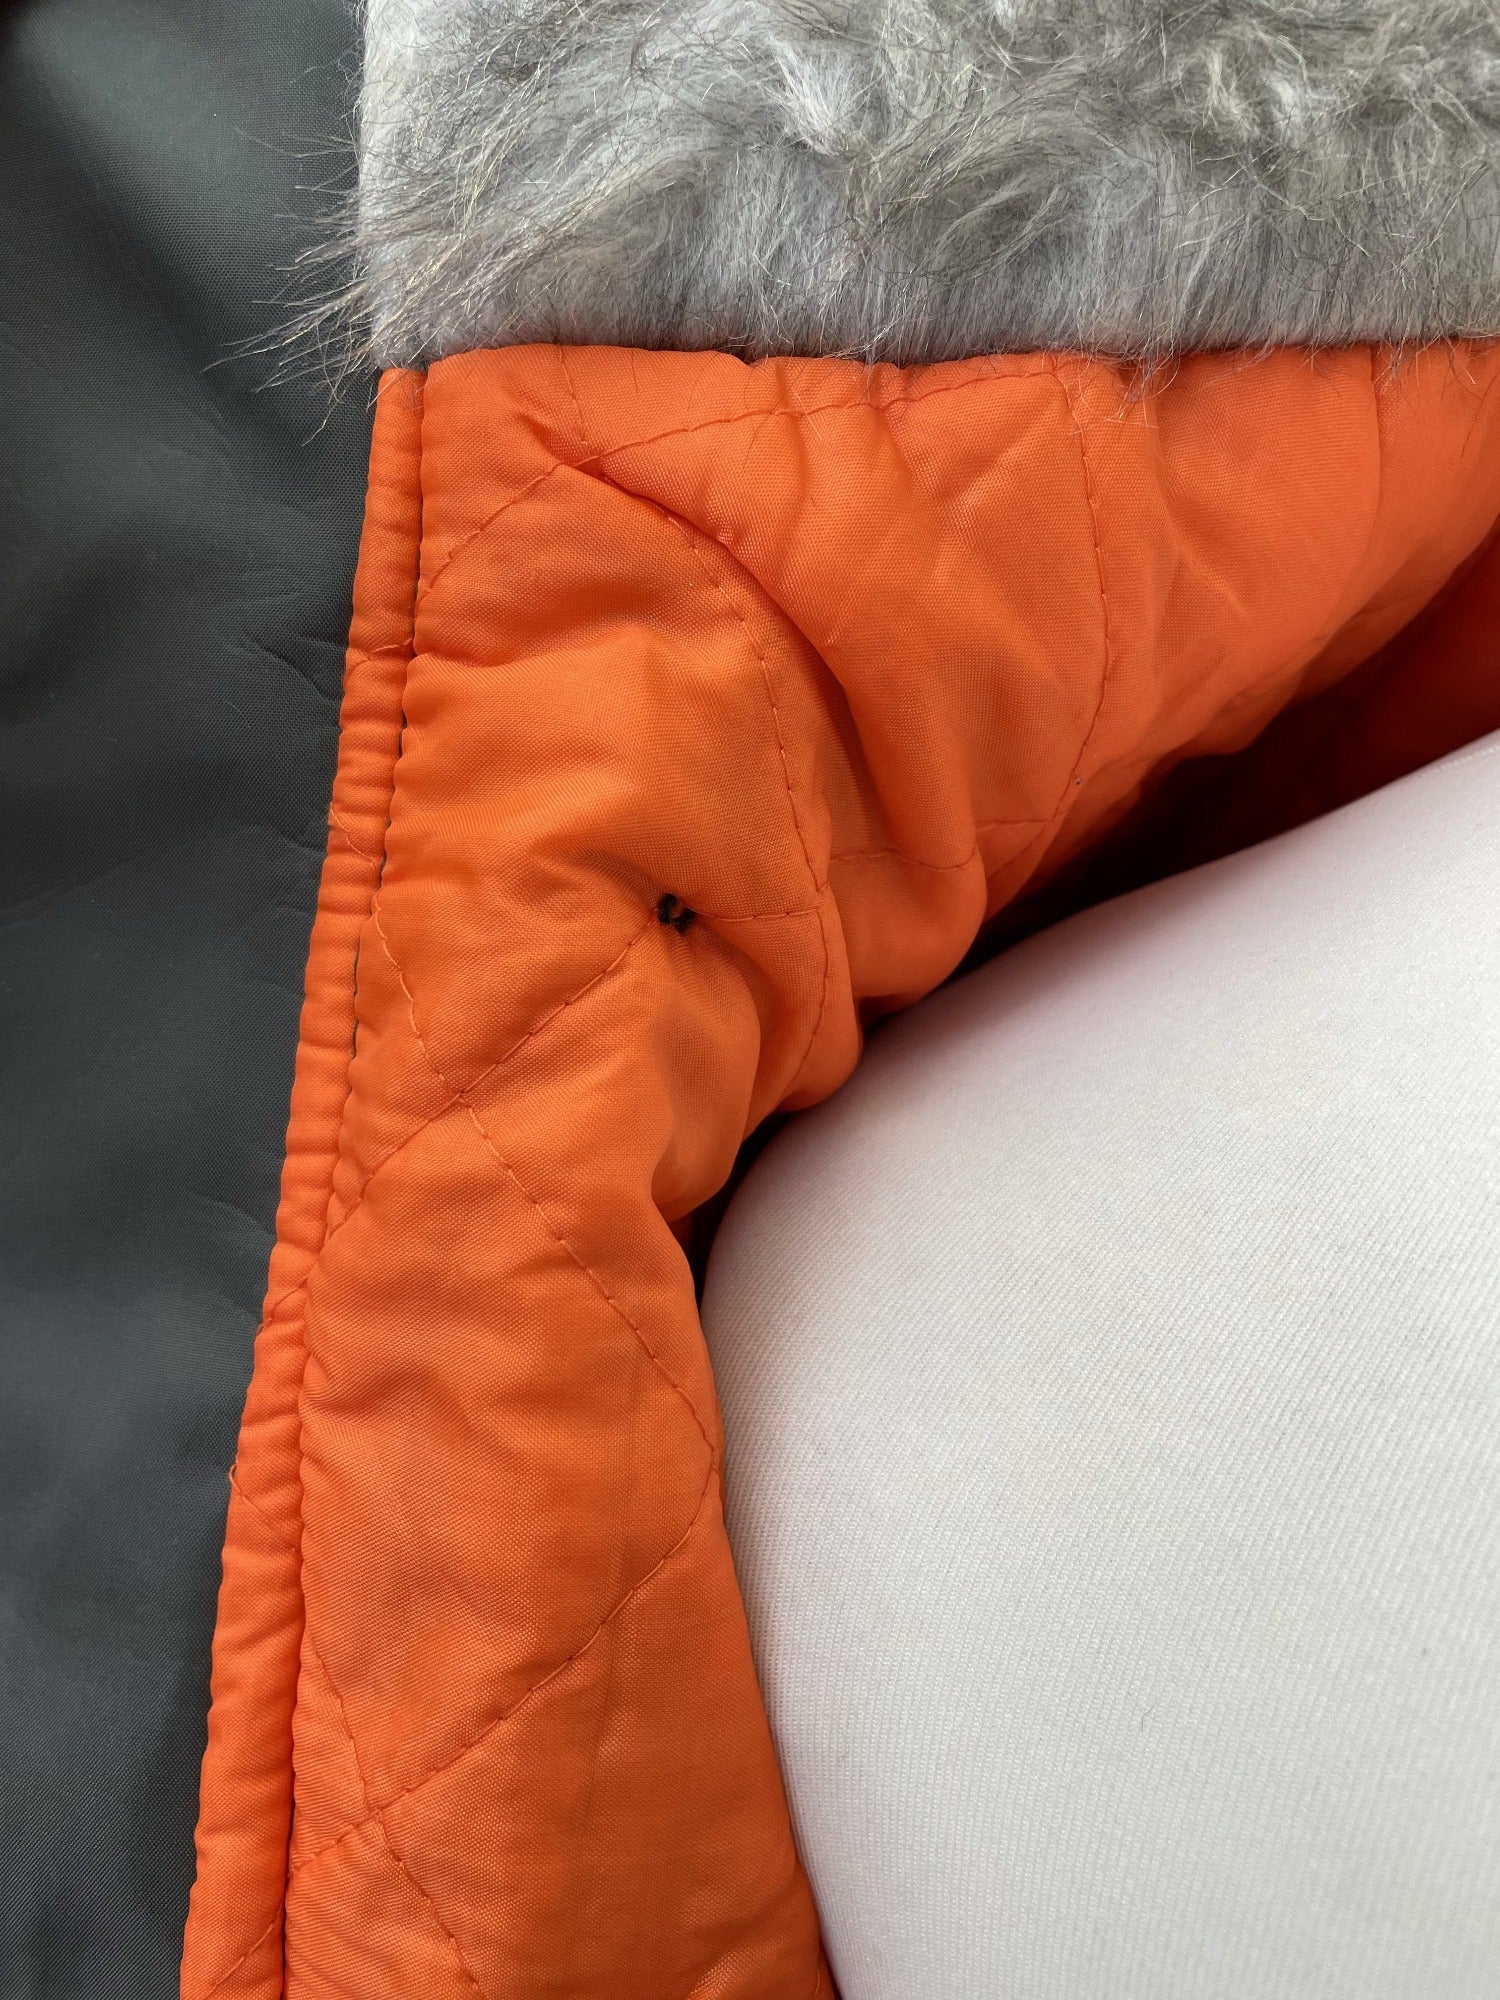 Winter Jacket  Winter Coat  winter  vintage  Urban Village Vintage  thick  snorkel jacket  retro  parka  padded  Orange lining  mens  M  lining  Jacket  hooded  hood  Green  faux fur  faux collar  elasticated